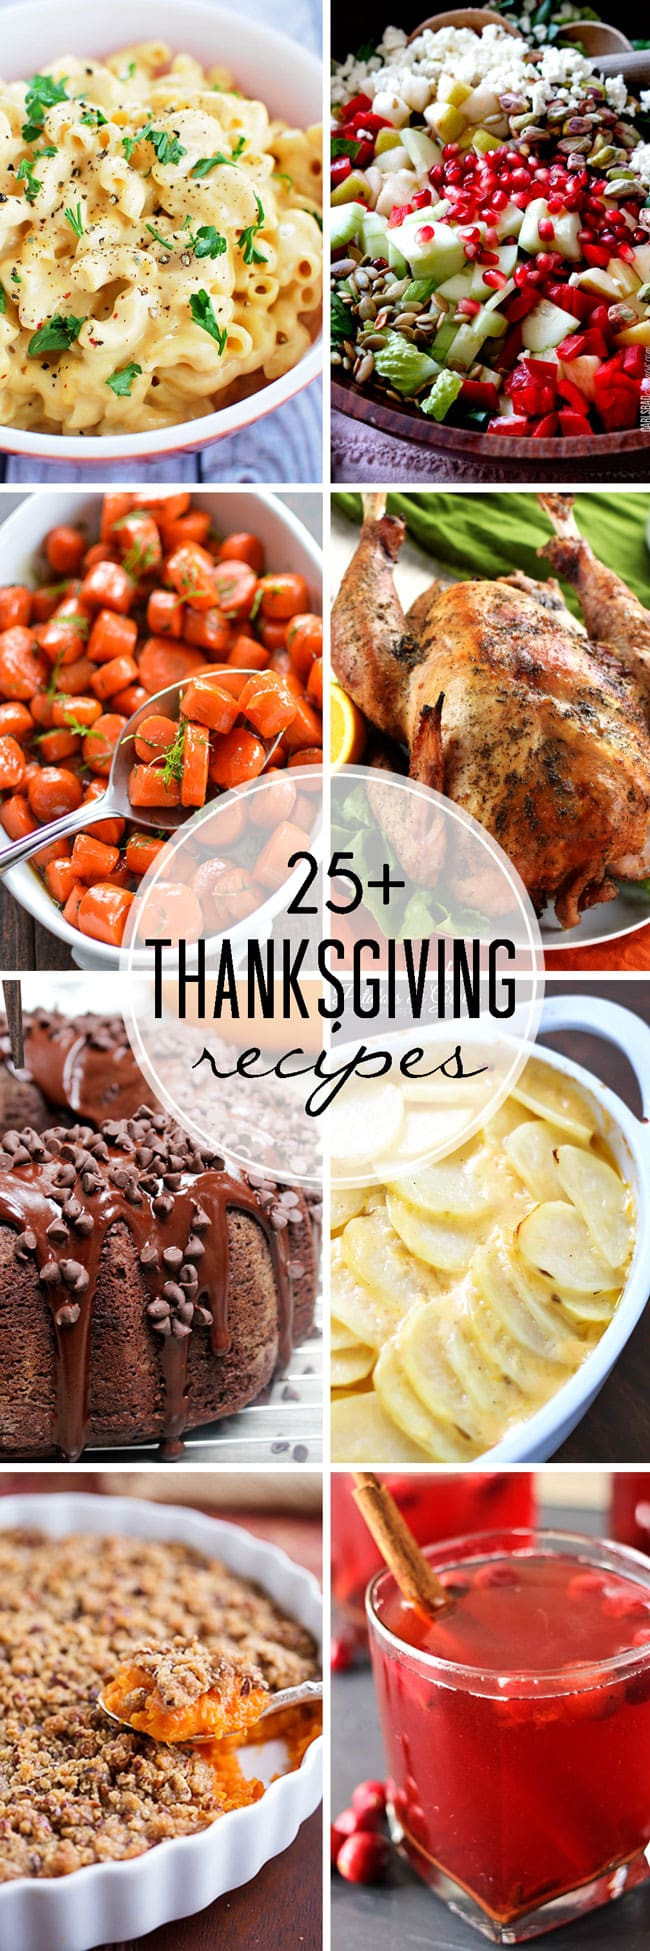 Thanksgiving Dinner Ideas Pinterest  25 Thanksgiving Recipes Easy Peasy Meals